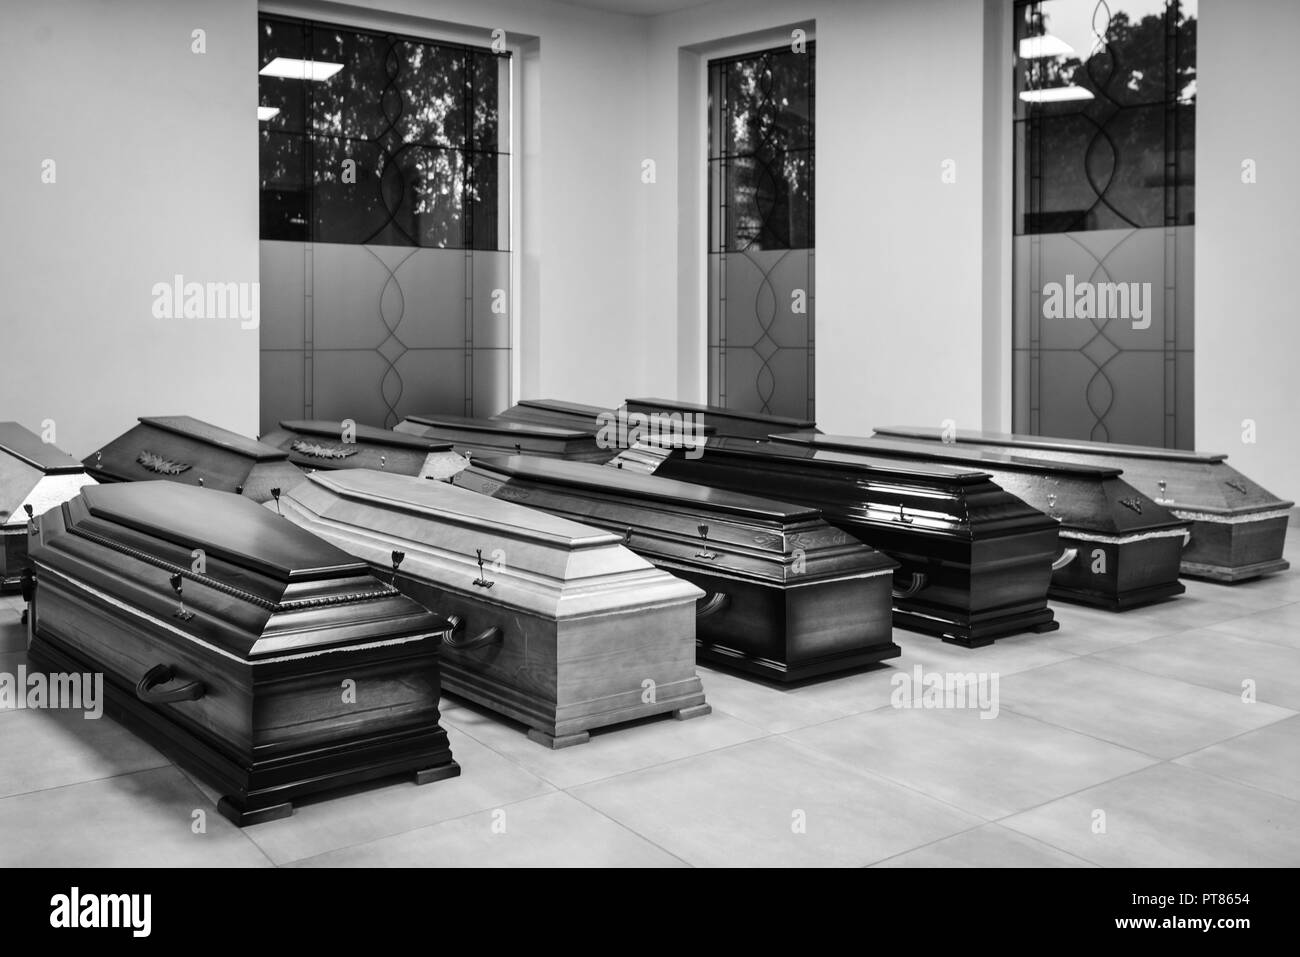 Coffins in the funeral shop Stock Photo